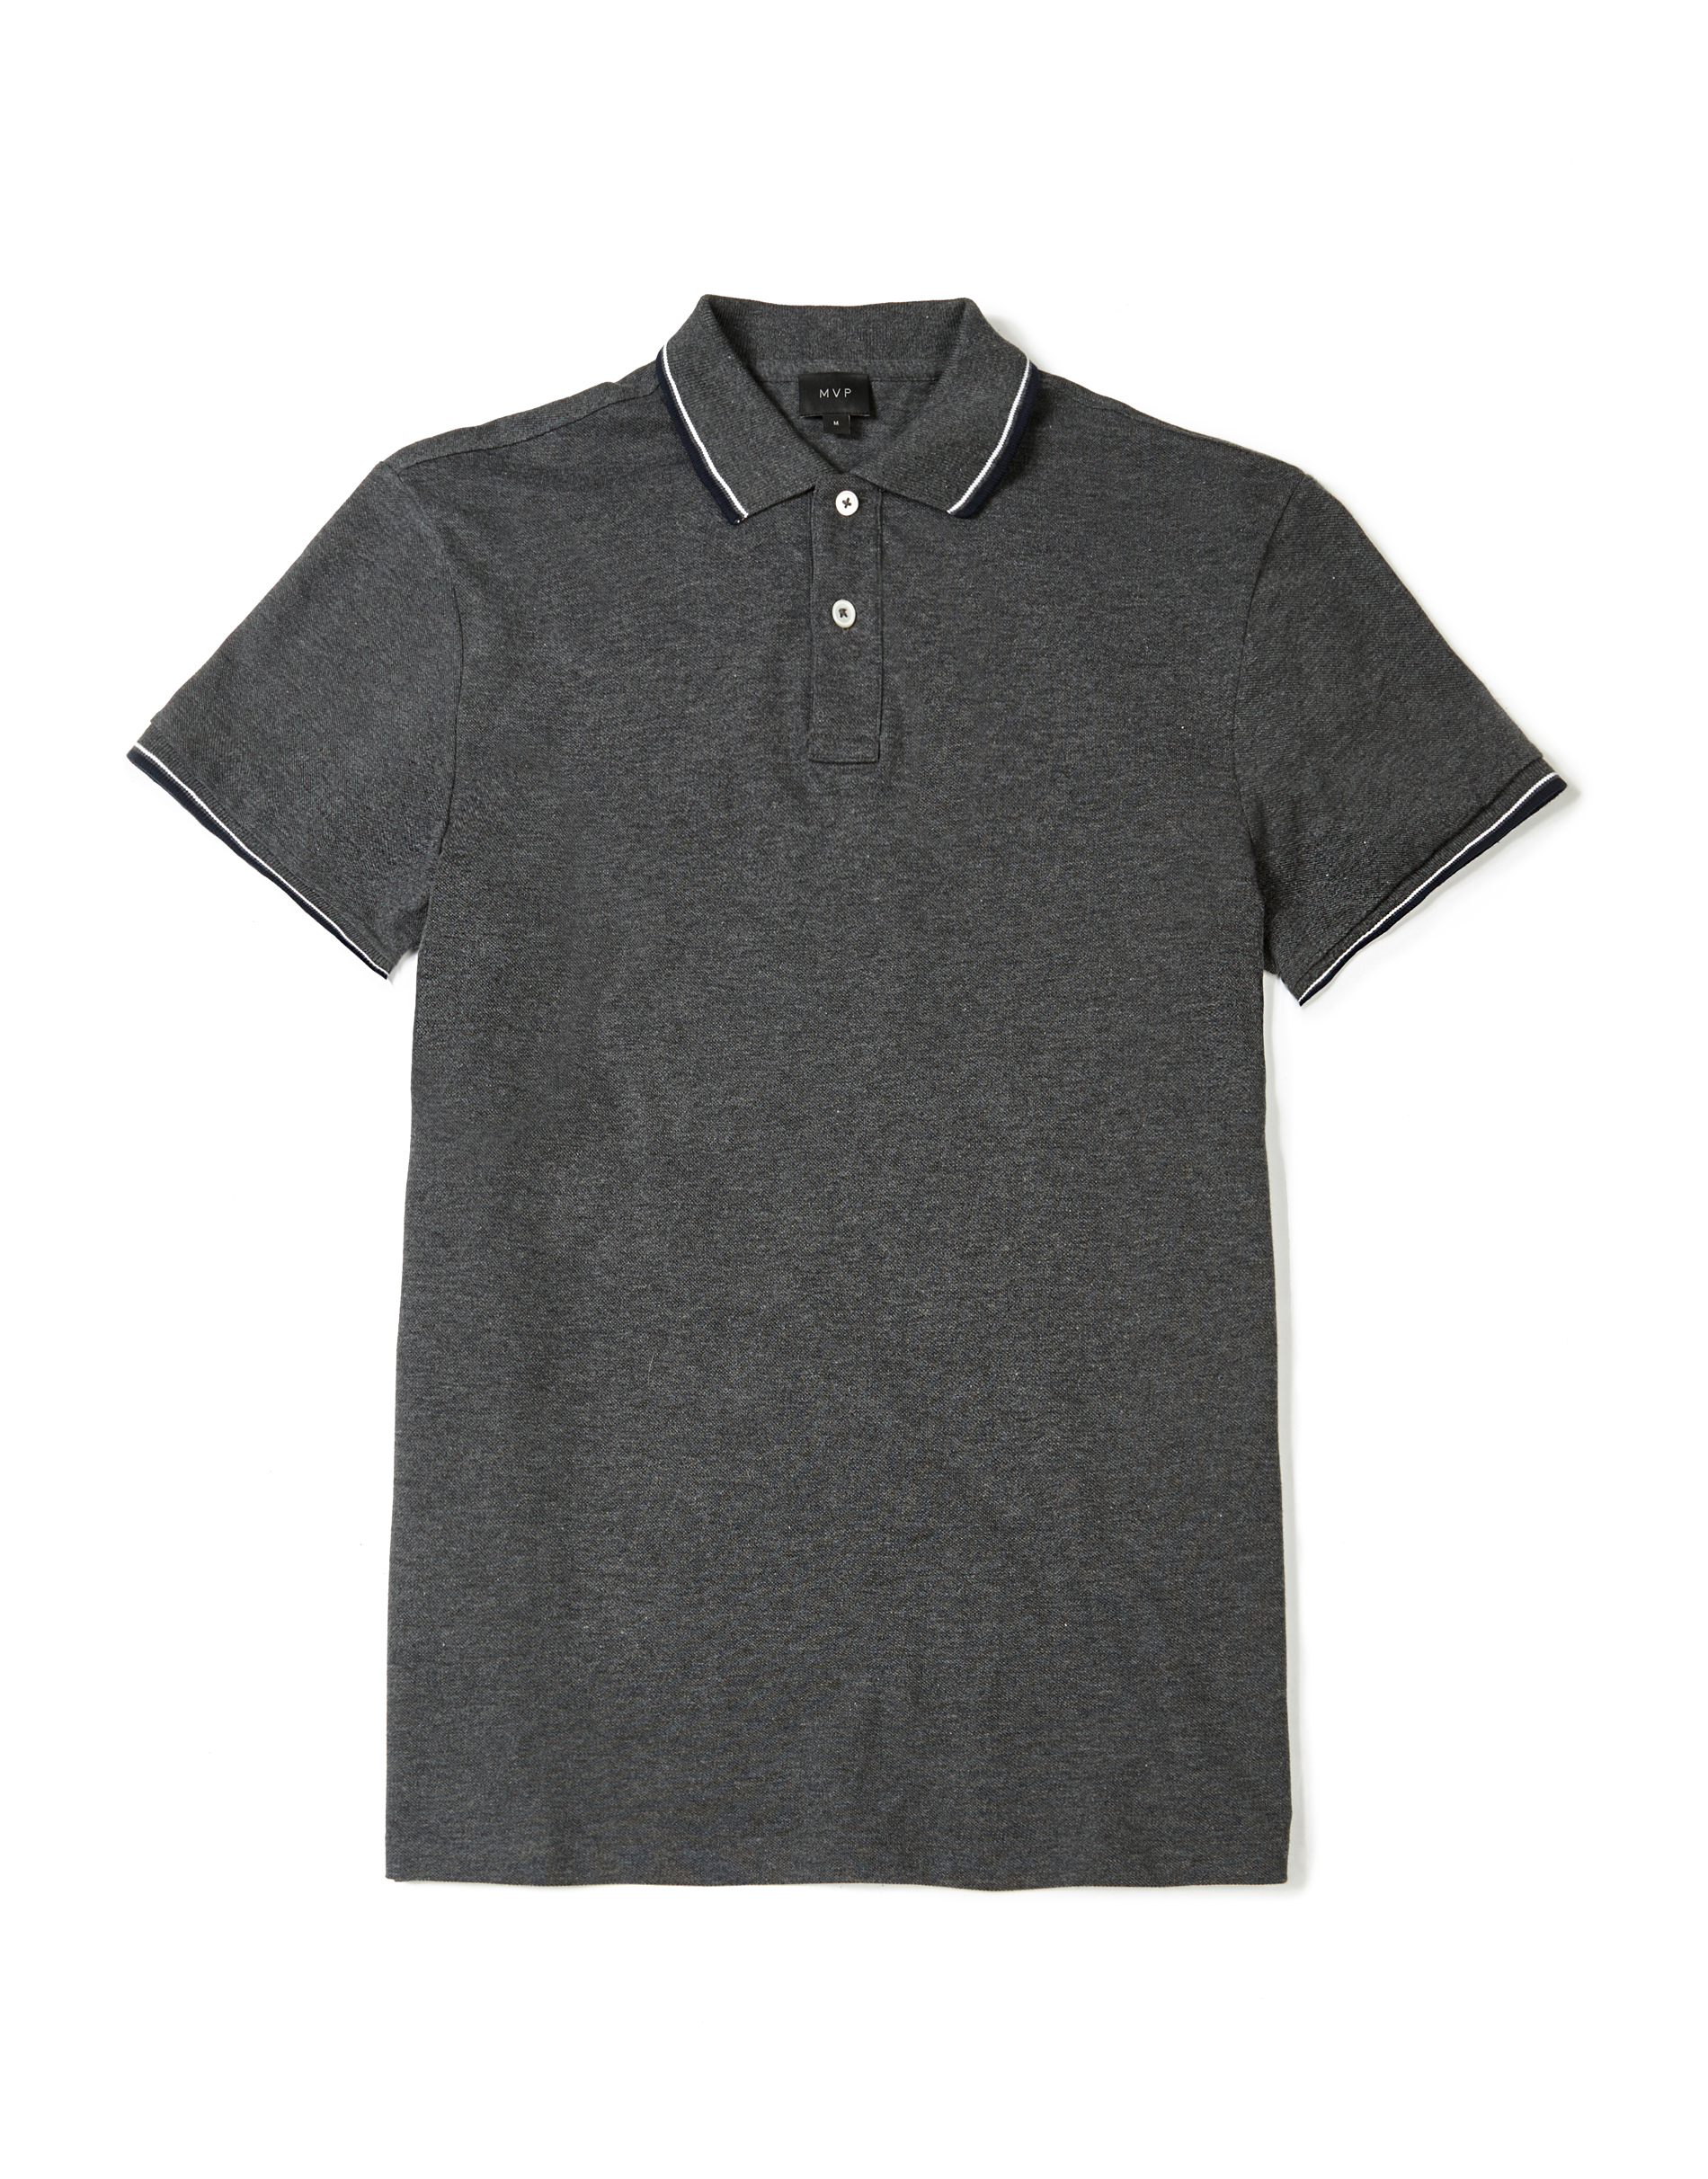 MVP CHARCOAL MELANGE Wilkes Regular Fit Polo with Contrast Tipping